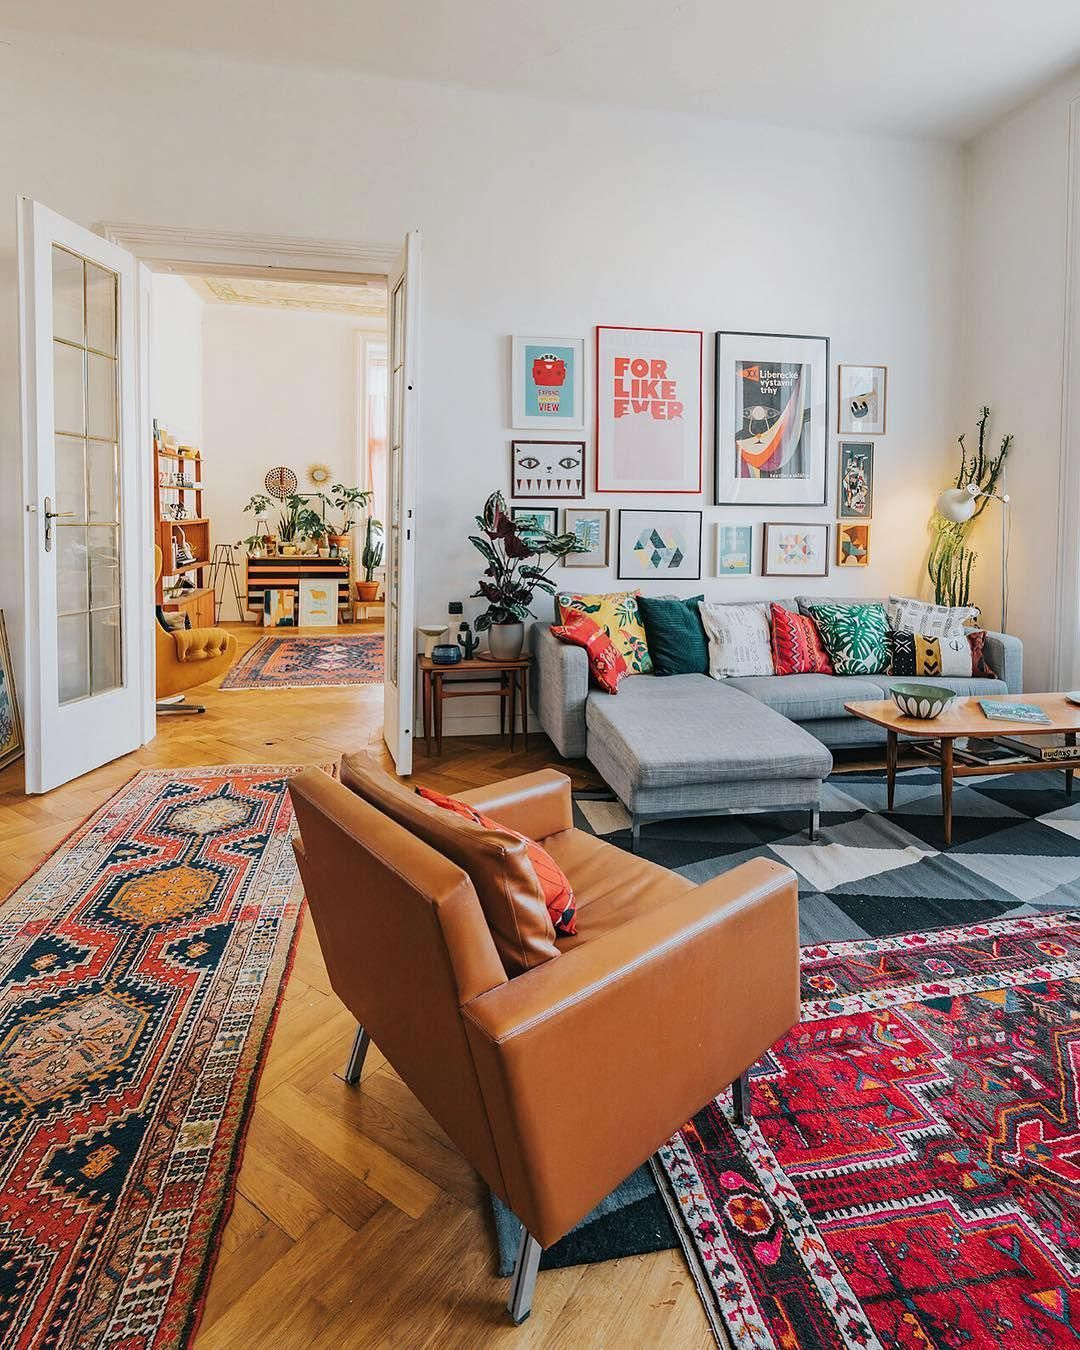 Jan Skacelik On Instagram Happy Sunday How Was Your Weekend Today It Was Just Relaxing And Laz Rugs In Living Room Cozy Living Rooms Trendy Living Rooms In living room meaning